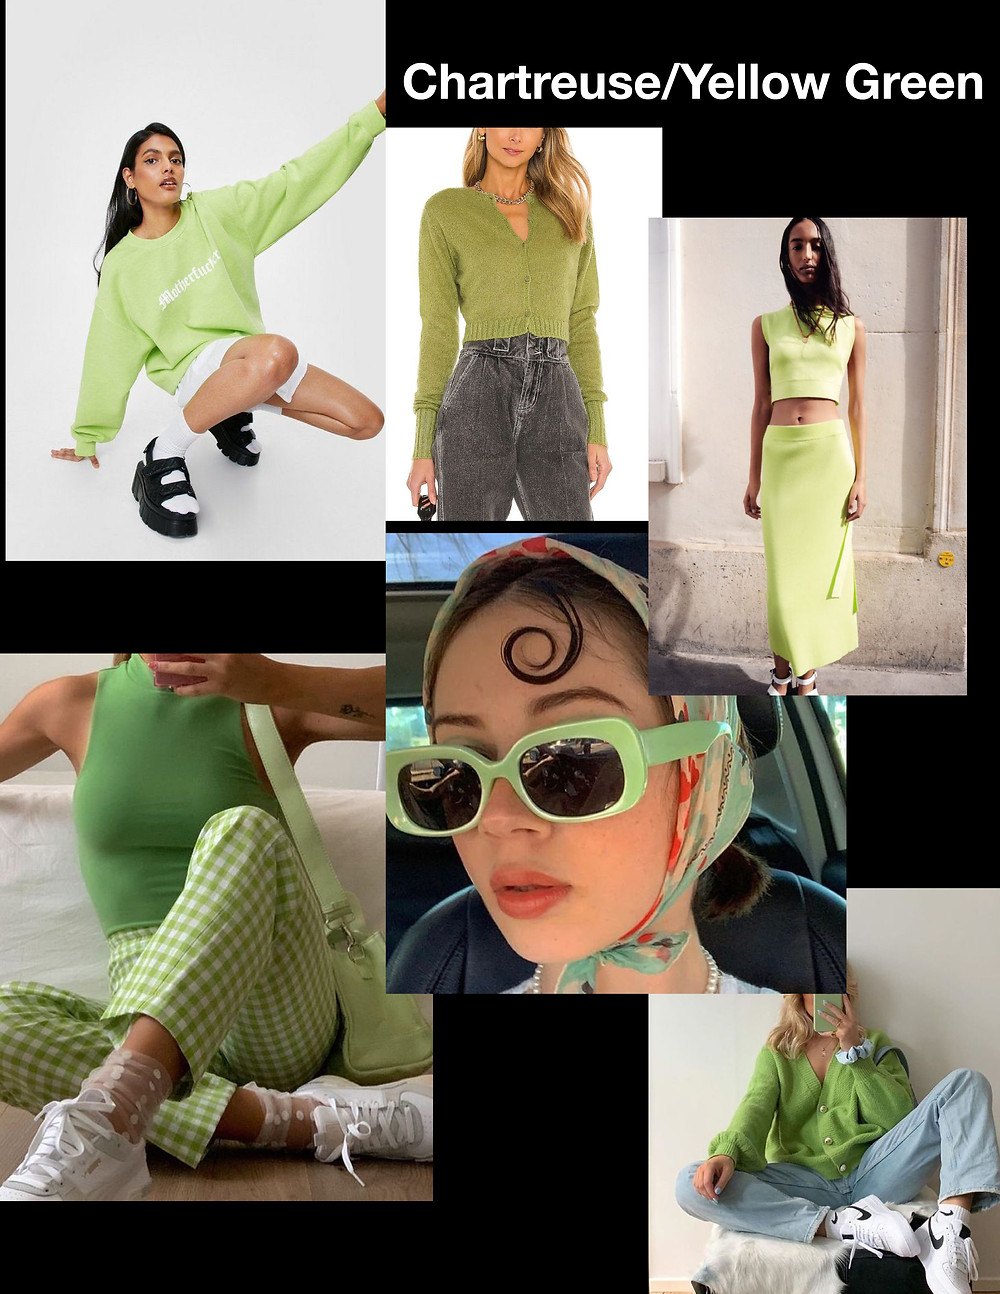 fashion trends for summer 2021, green outfits, shopping guide, stylist advice, chartreuse fashion, yellow green outfits